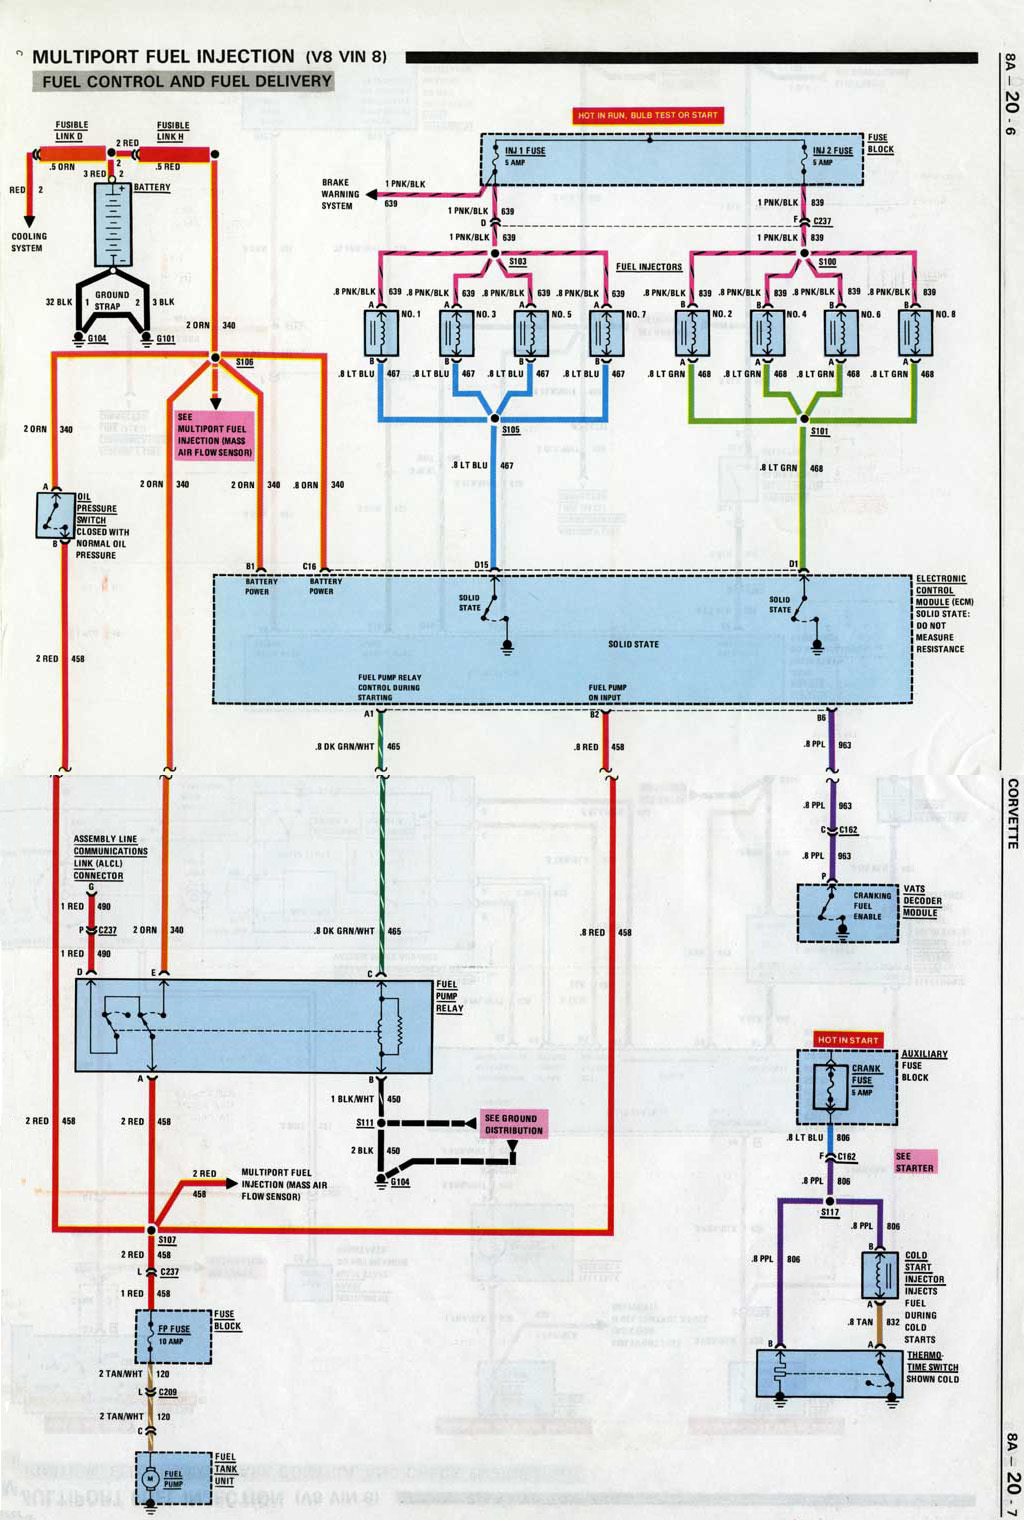 [DIAGRAM_38EU]  FY_7675] Wiring Harness Diagram Also Fuel Pump Wiring Diagram Further  Caprice Wiring Diagram | 1986 Camaro Fuel Pump Wiring Harness Diagram |  | Timew Inrebe Mohammedshrine Librar Wiring 101